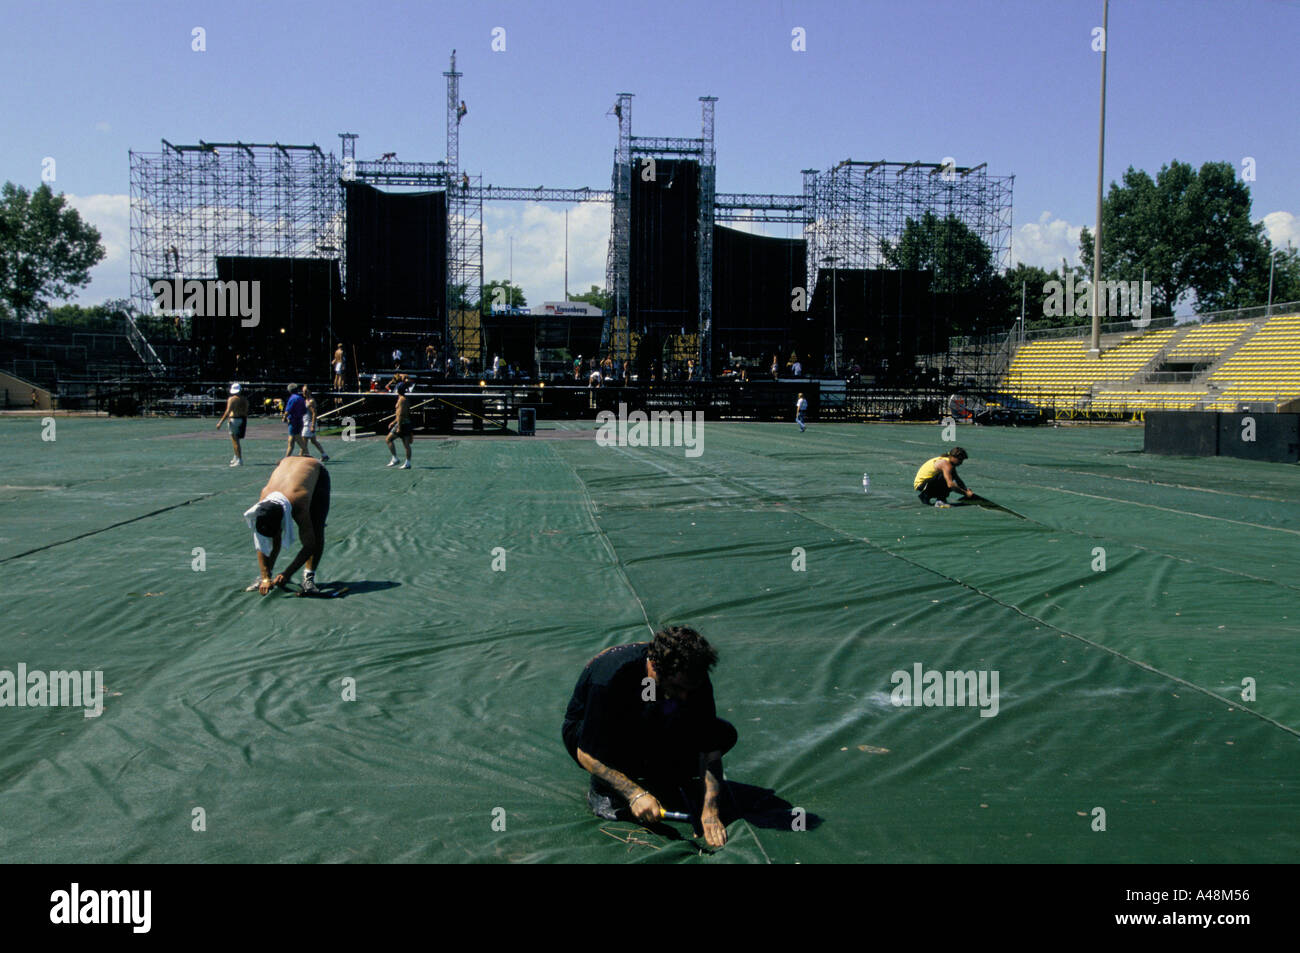 Roadies preparing a stadium for a concert by Irish rock band U2 lay protective covering over the football pitch. - Stock Image